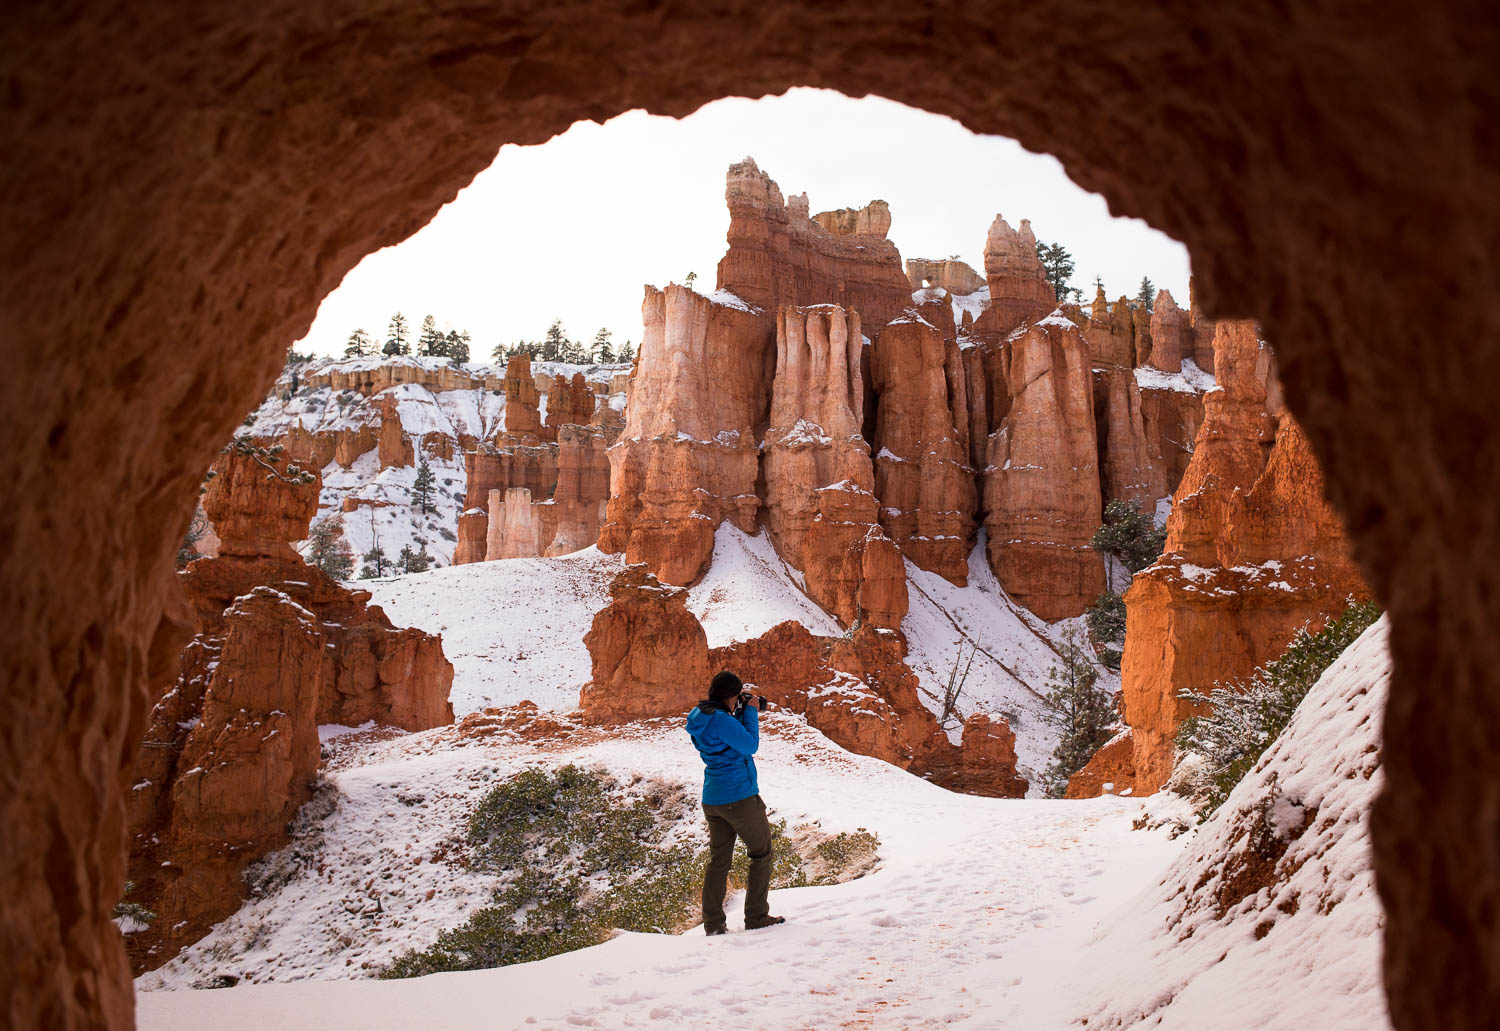 20151104_Bryce Canyon Snow_074.jpg